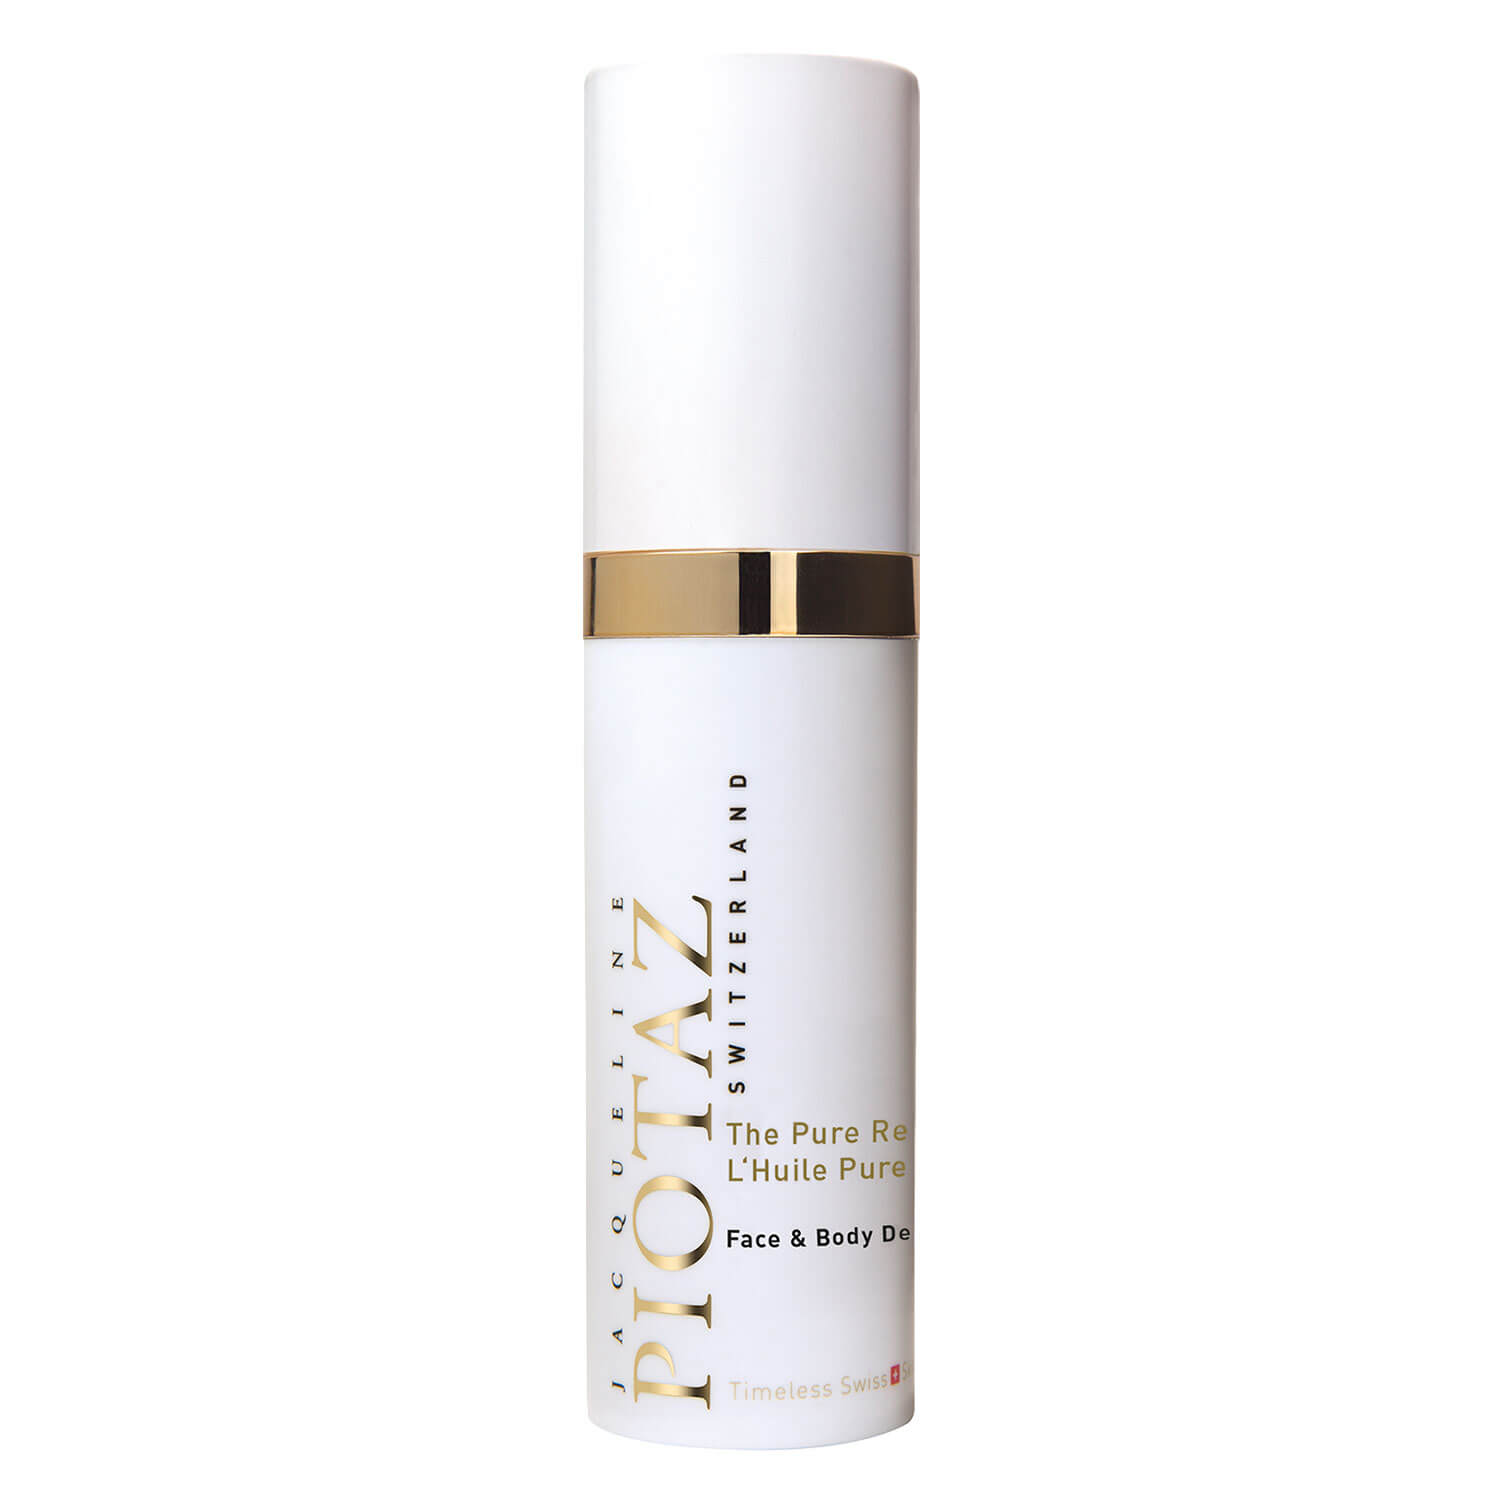 Cellpower Experts - The Pure Revitalizing Oil